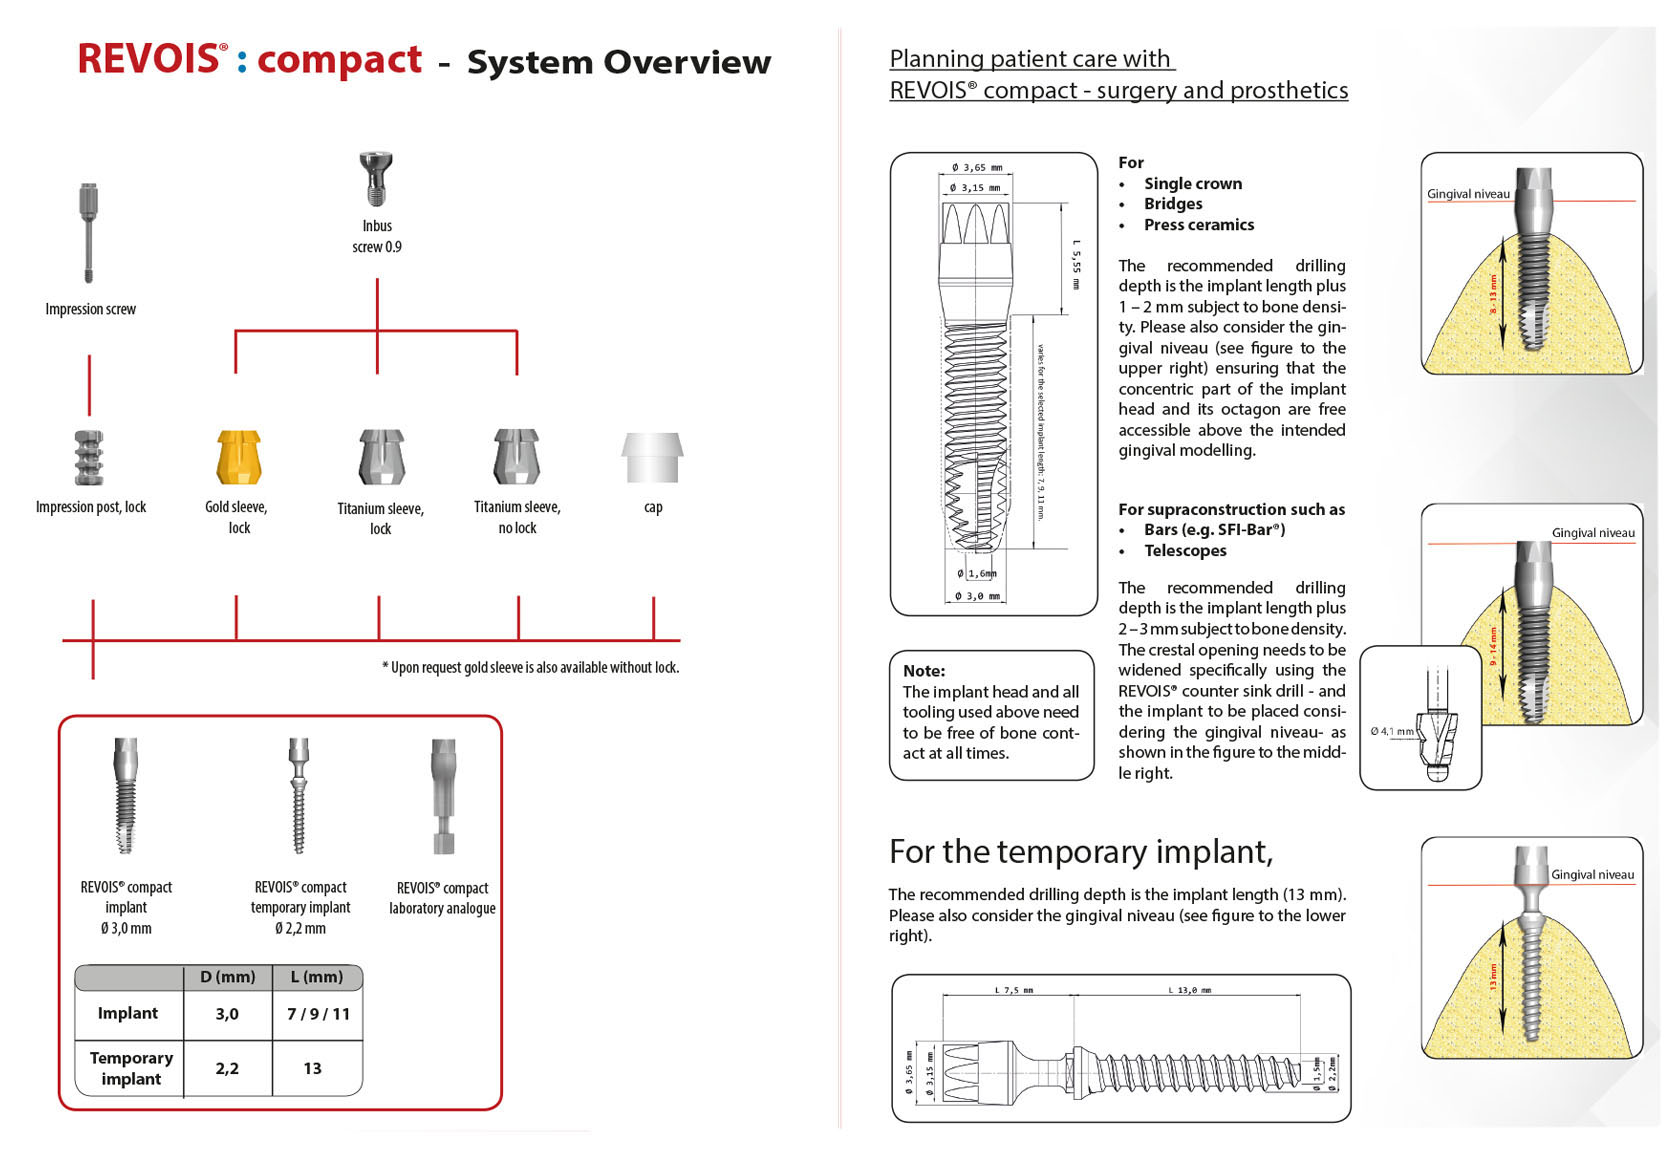 Revois compact system overview